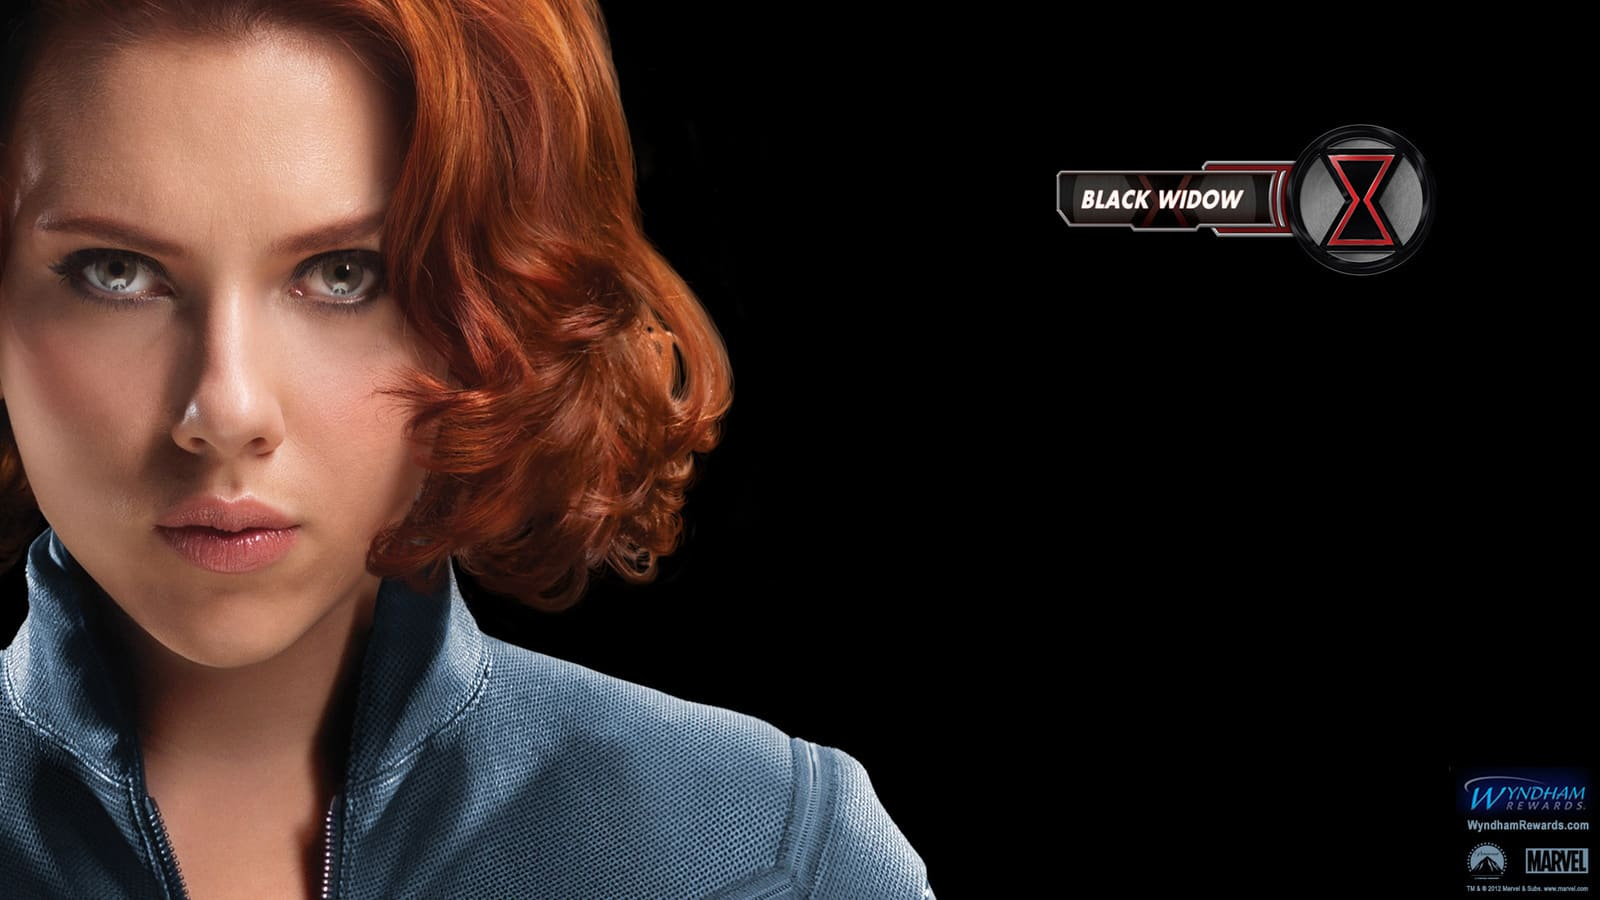 The Avengers Wallpaper Black Widow Movie Fanatic